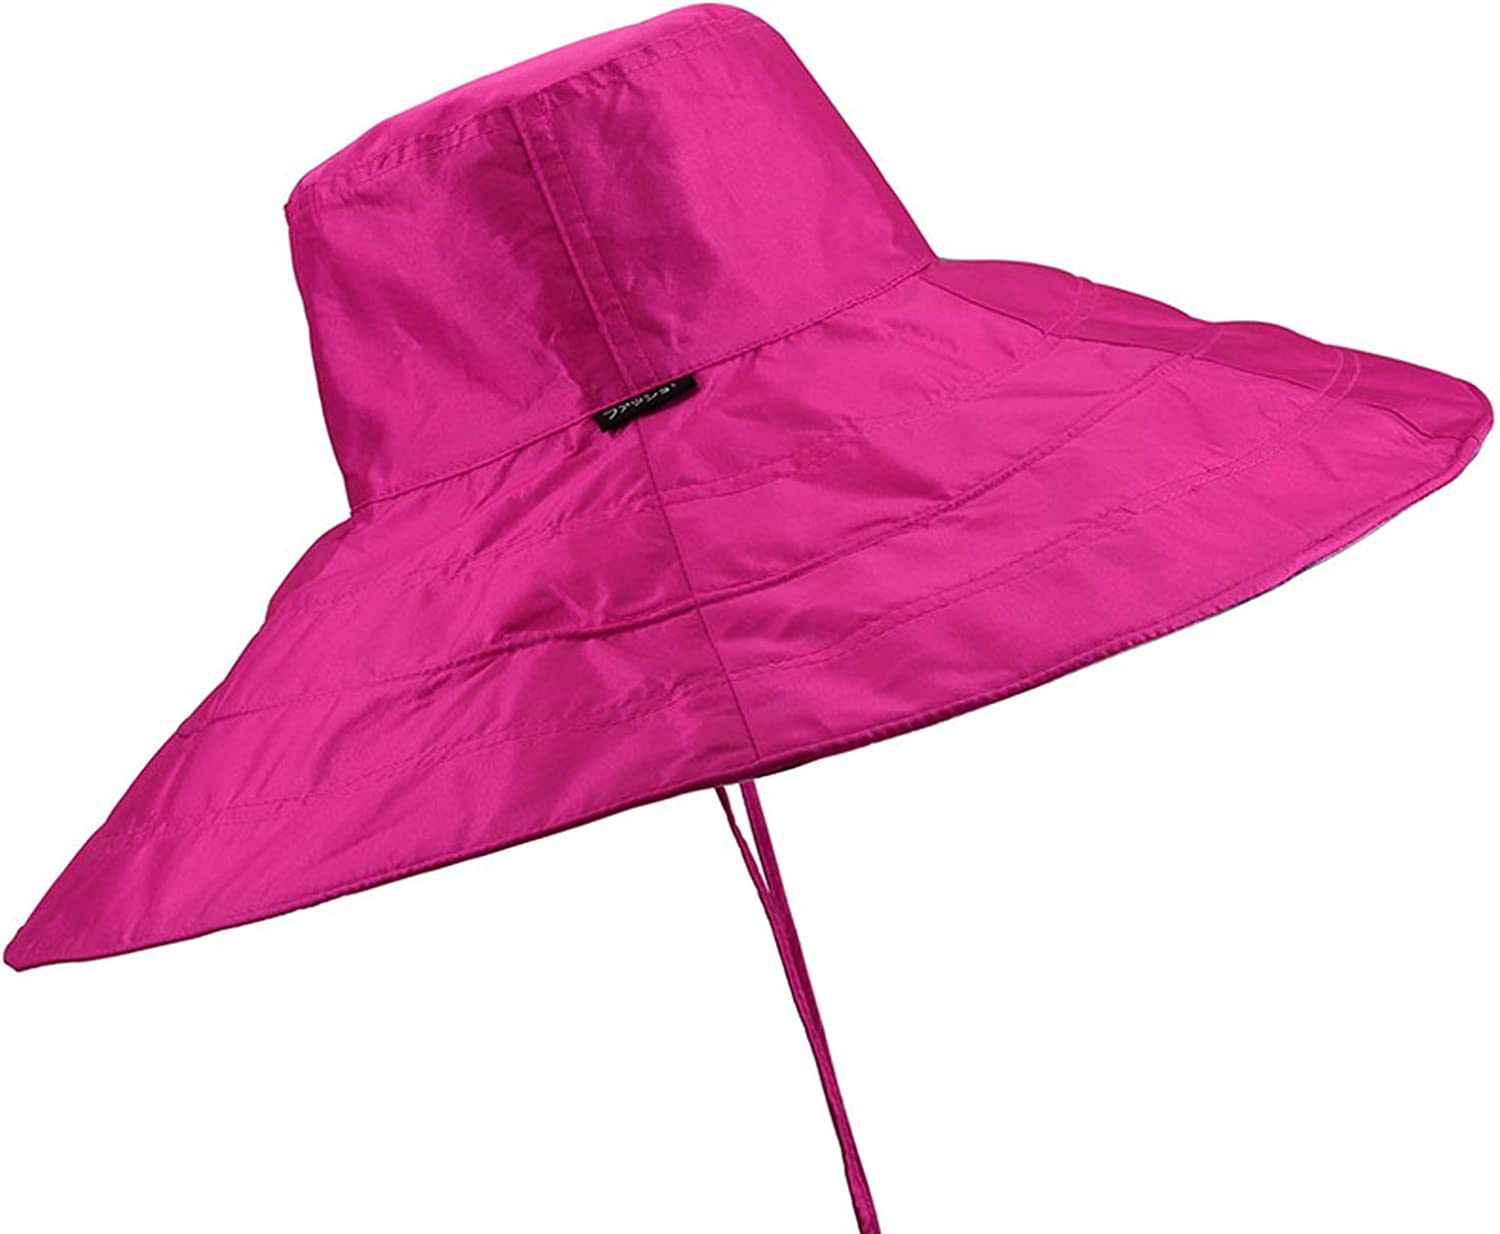 CHENTAI Latest Fashion Large hat Ladies Summer Beach Spring Sun Hats Large Wide Brim Foldable